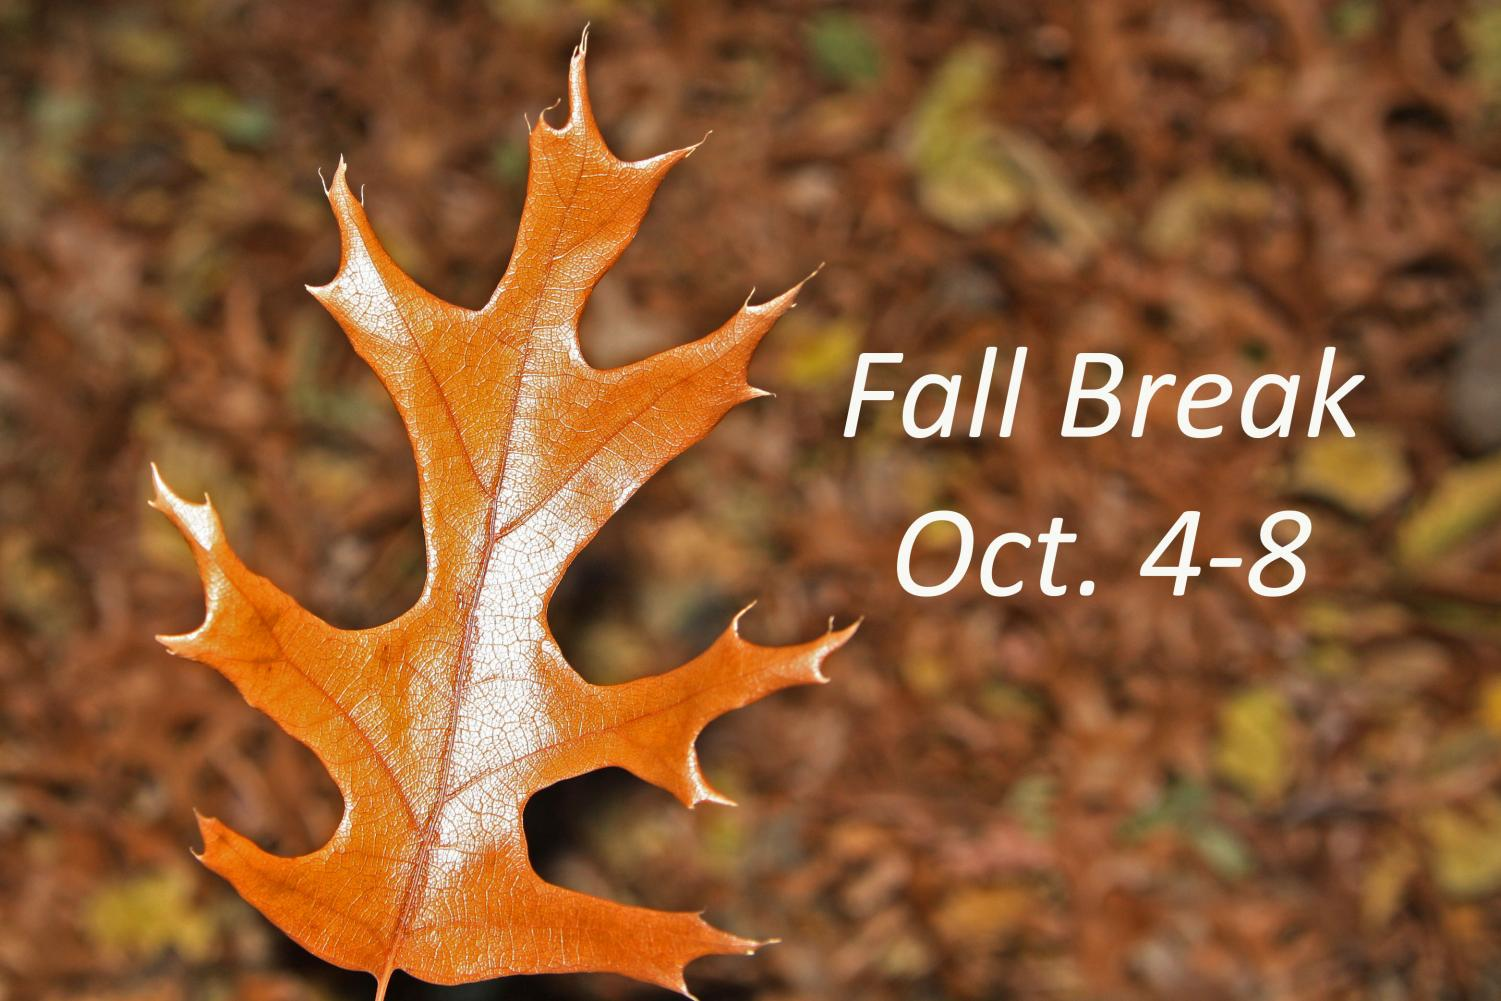 Fall break for students runs Oct. 4-8.